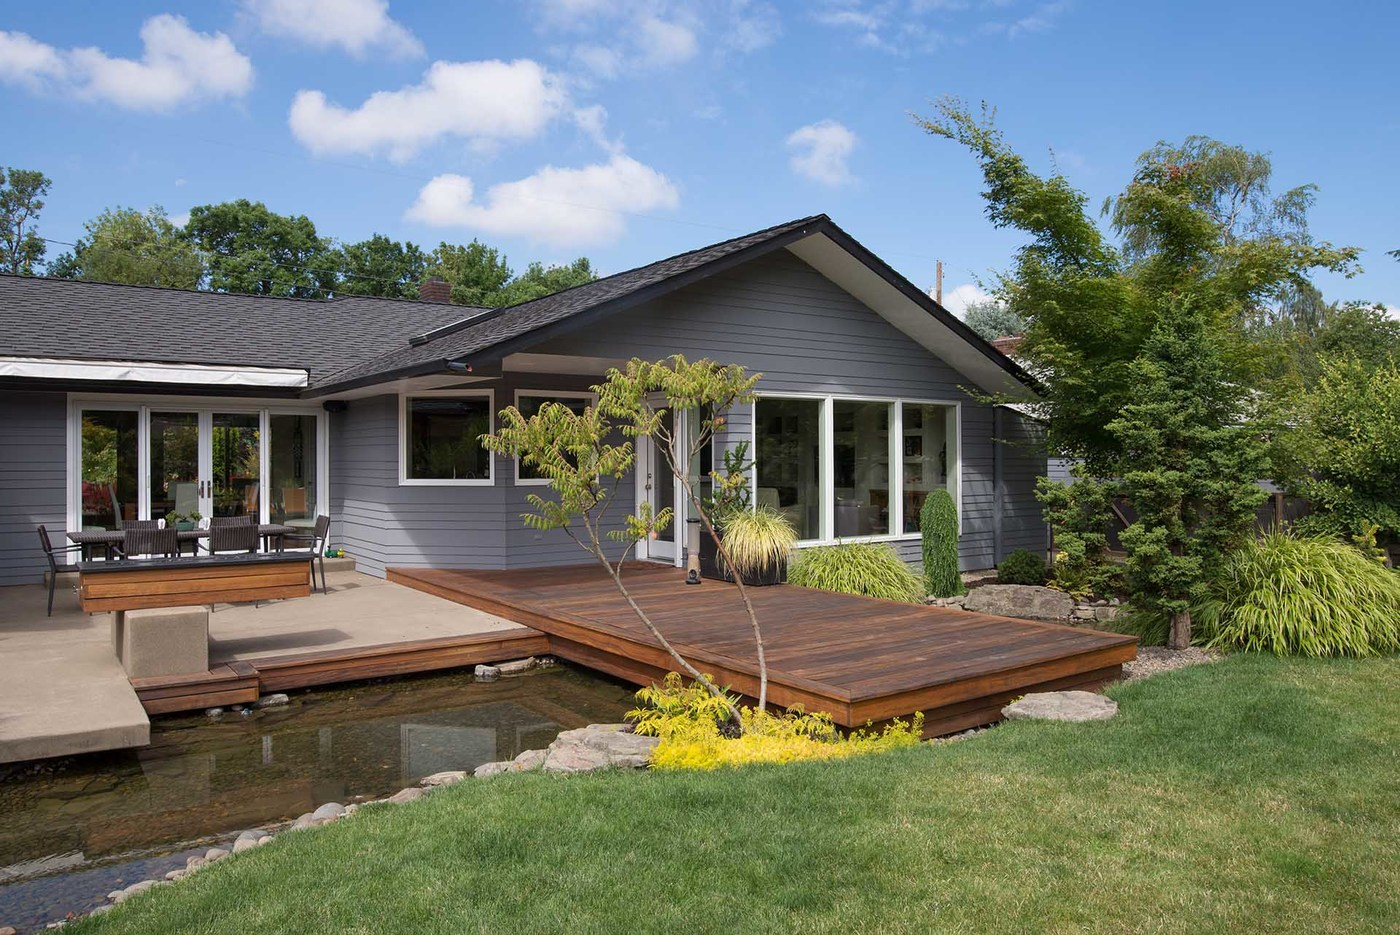 A blue summer sky punctuated with fluffy white clouds serves as the perfect background for this portrait of a contemporary Pacific Northwest home featuring a deck that spans a water feature emulating a rock lined stream that enhances their backyard.